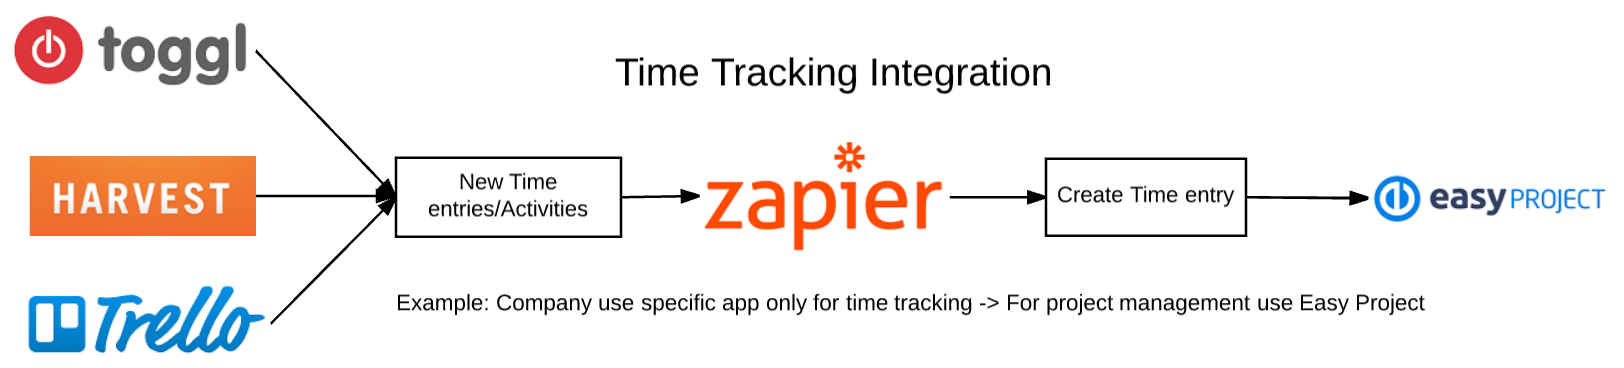 Easy Project 2017 time tracking integration